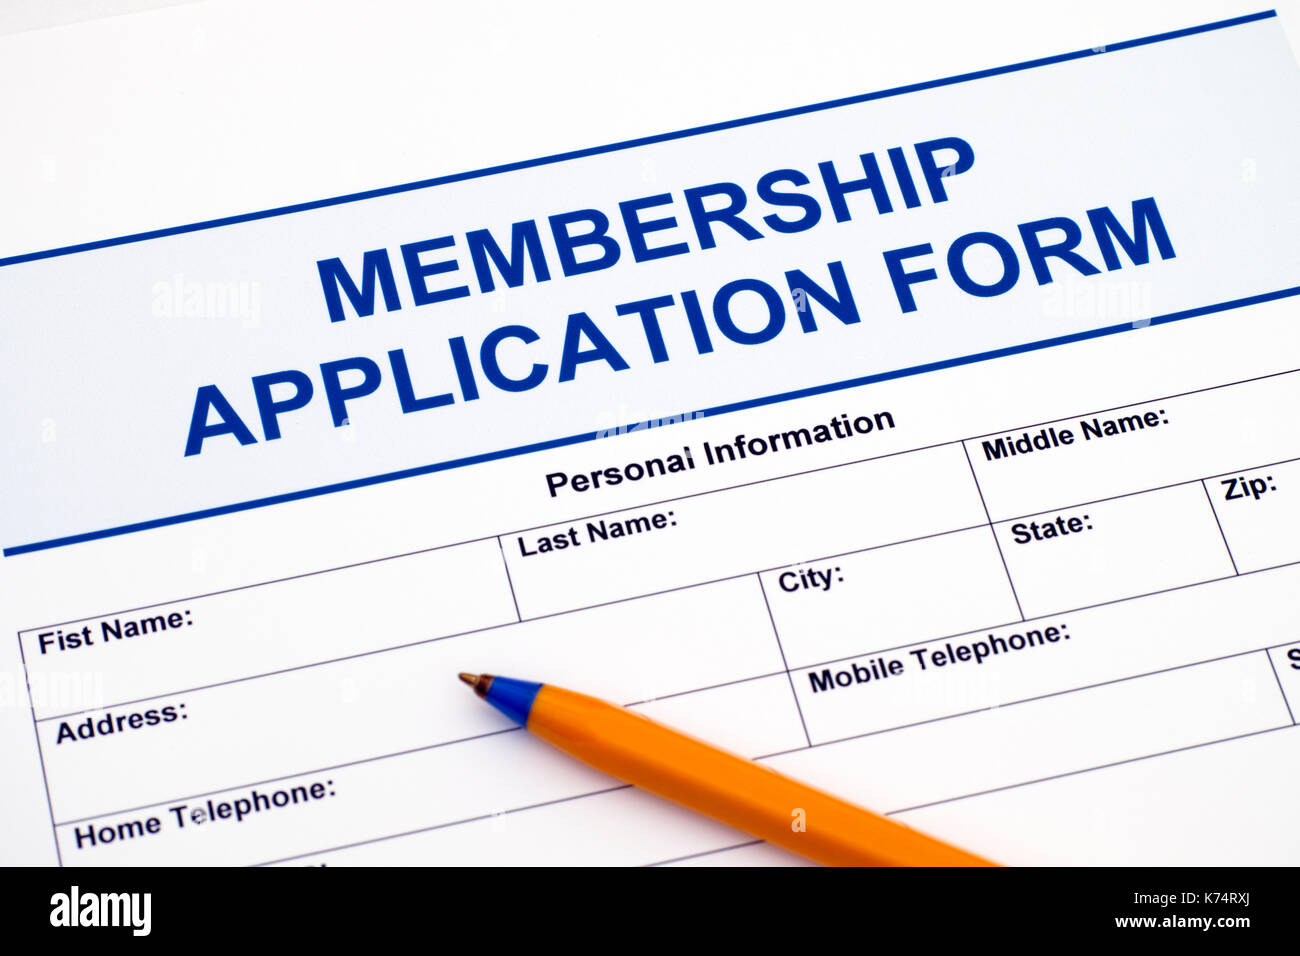 Membership application form with ballpoint pen. - Stock Image